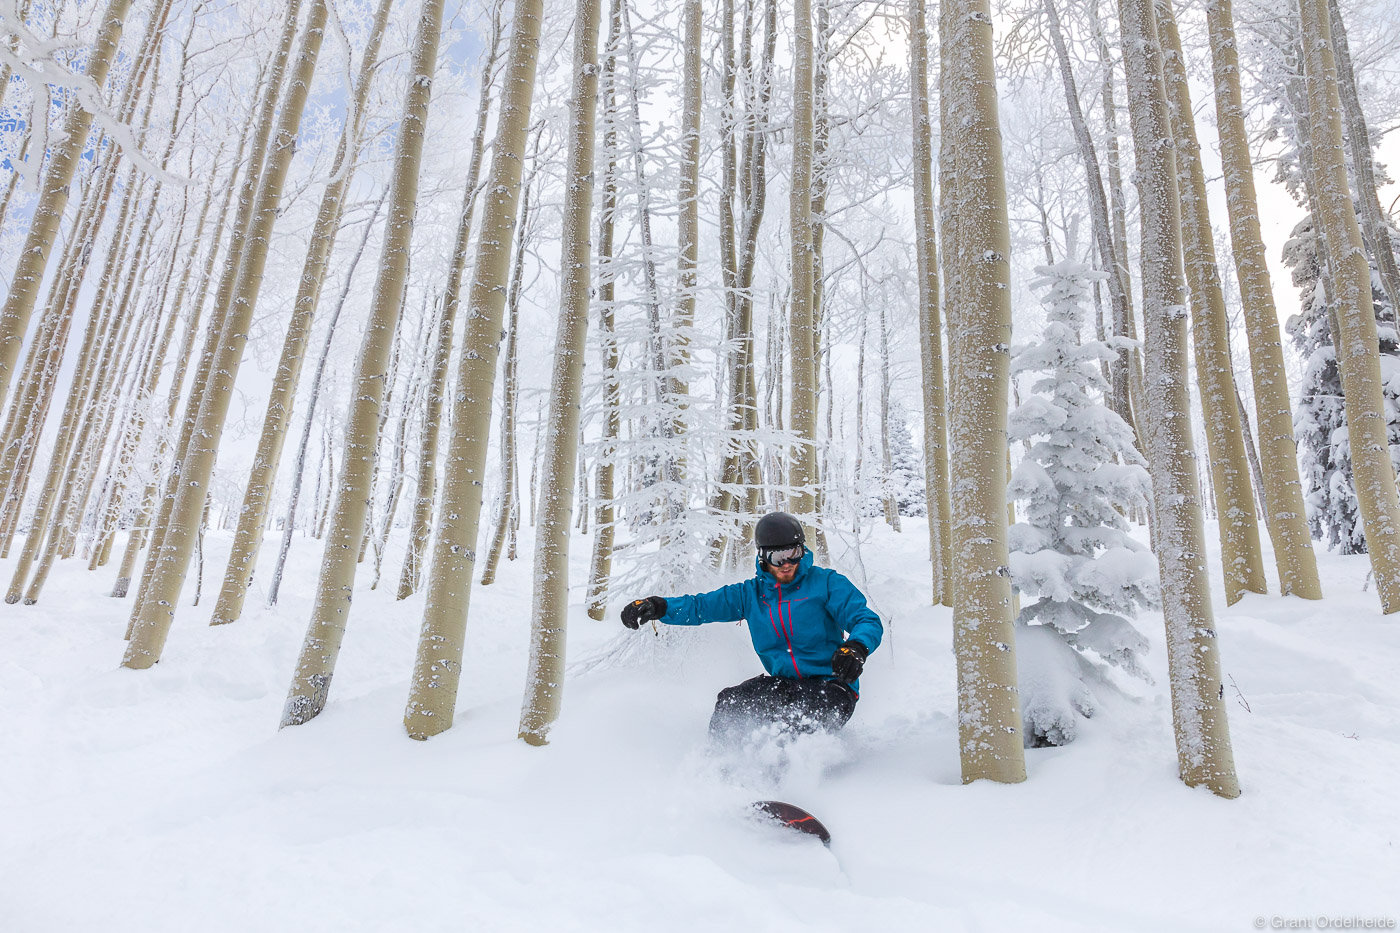 aspen, powder, steamboat, springs, colorado, usa, male, snowboarder, champagne, grove, trees, ski, resort, photo